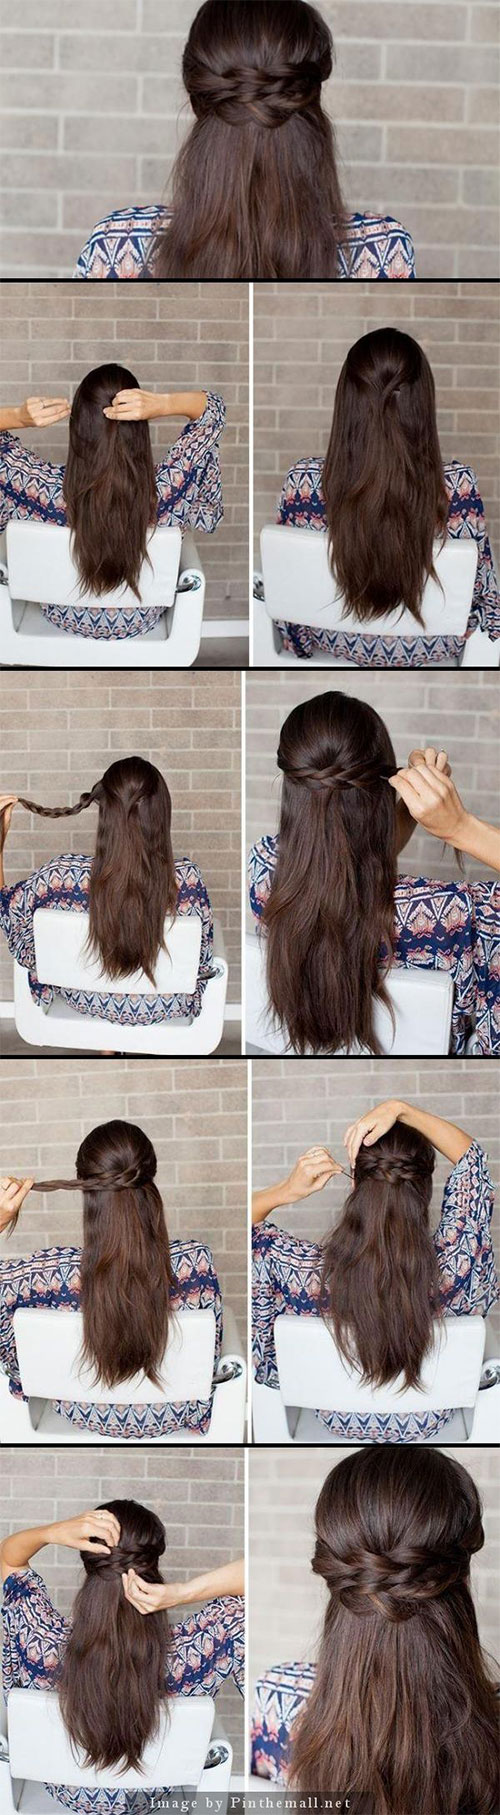 20-Easy-Step-By-Step-Summer-Braids-Style-Tutorials-For-Beginners-2015-14